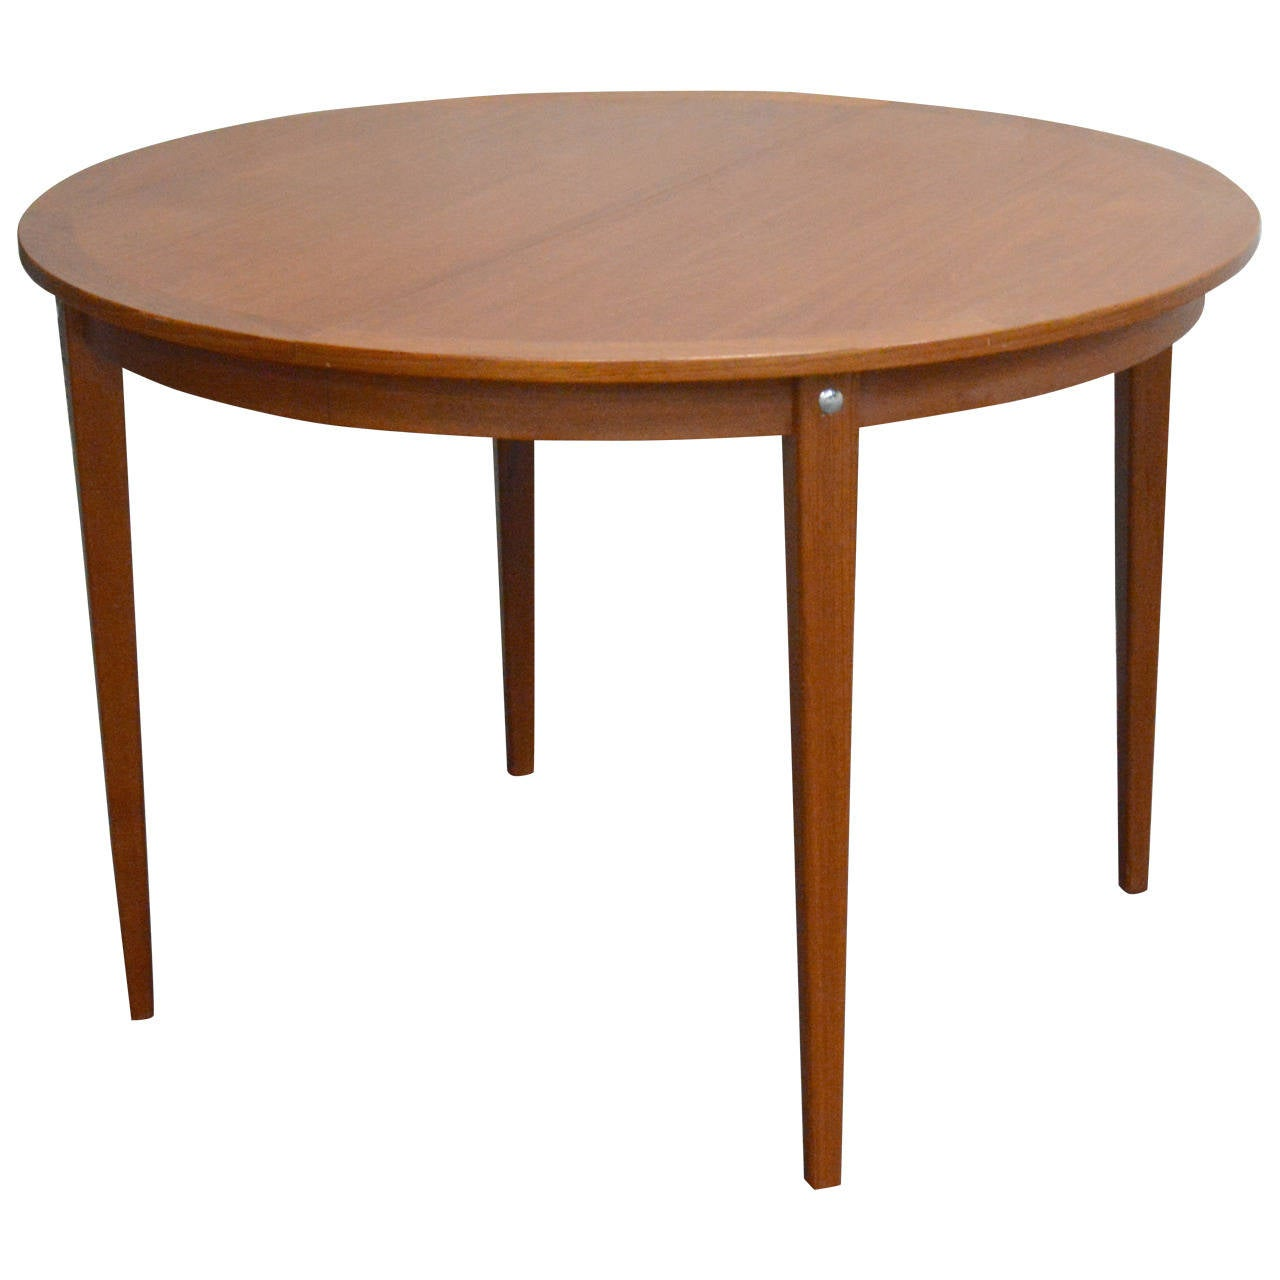 Mid century modern round swedish teak dining table for for Round dining room tables for sale